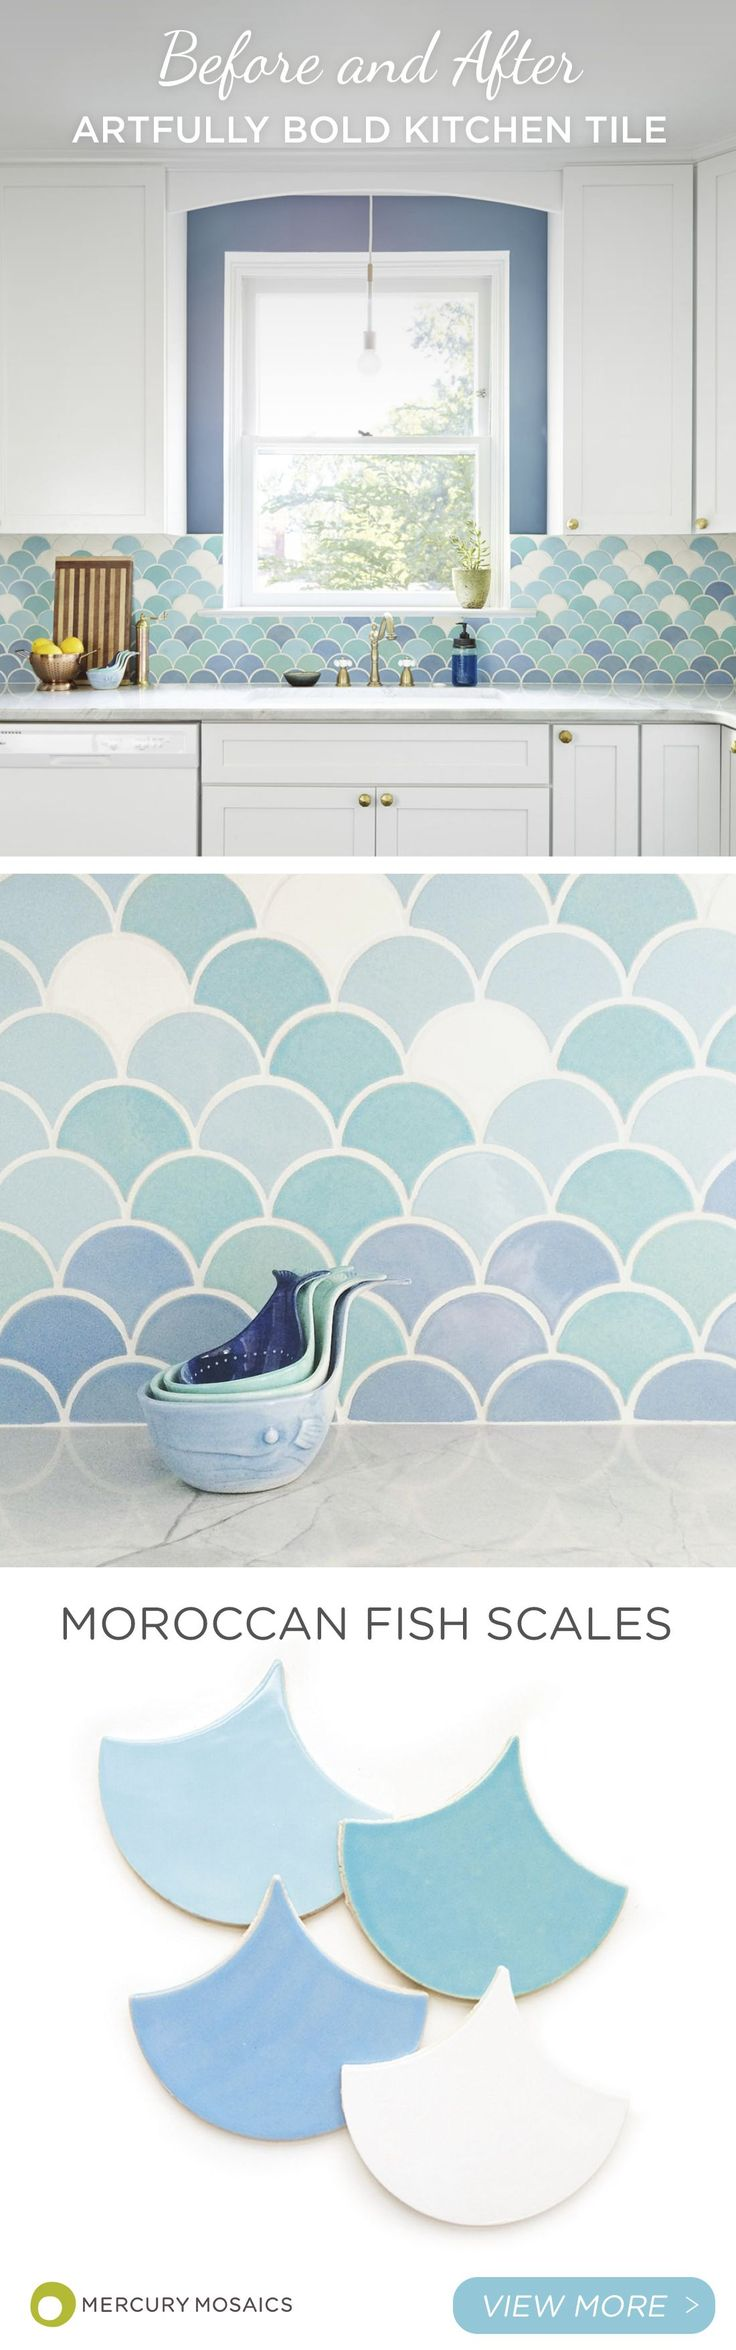 50 best tile and wallpaper images on pinterest bathroom now this is a kitchen that is sure to make your neighbors jealous this gorgeous gradation of moroccan fish scales in light blues to white is absolutely dailygadgetfo Choice Image